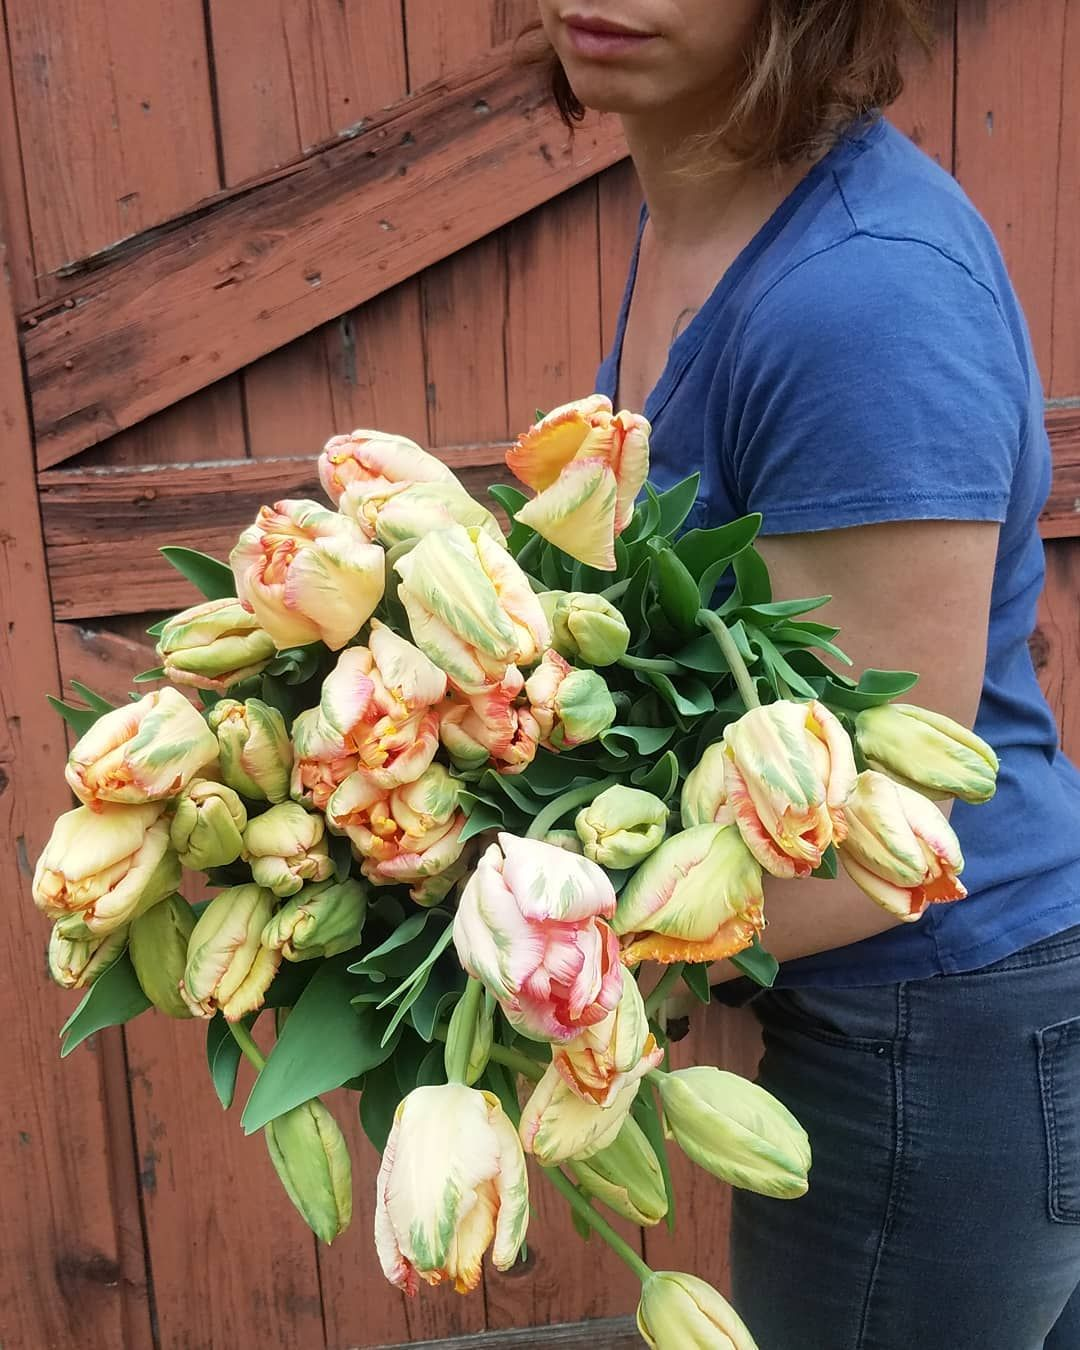 These Are Our Tulips Today >> Some Of Our Apricot Parrot Tulips From The Field This Is Our First